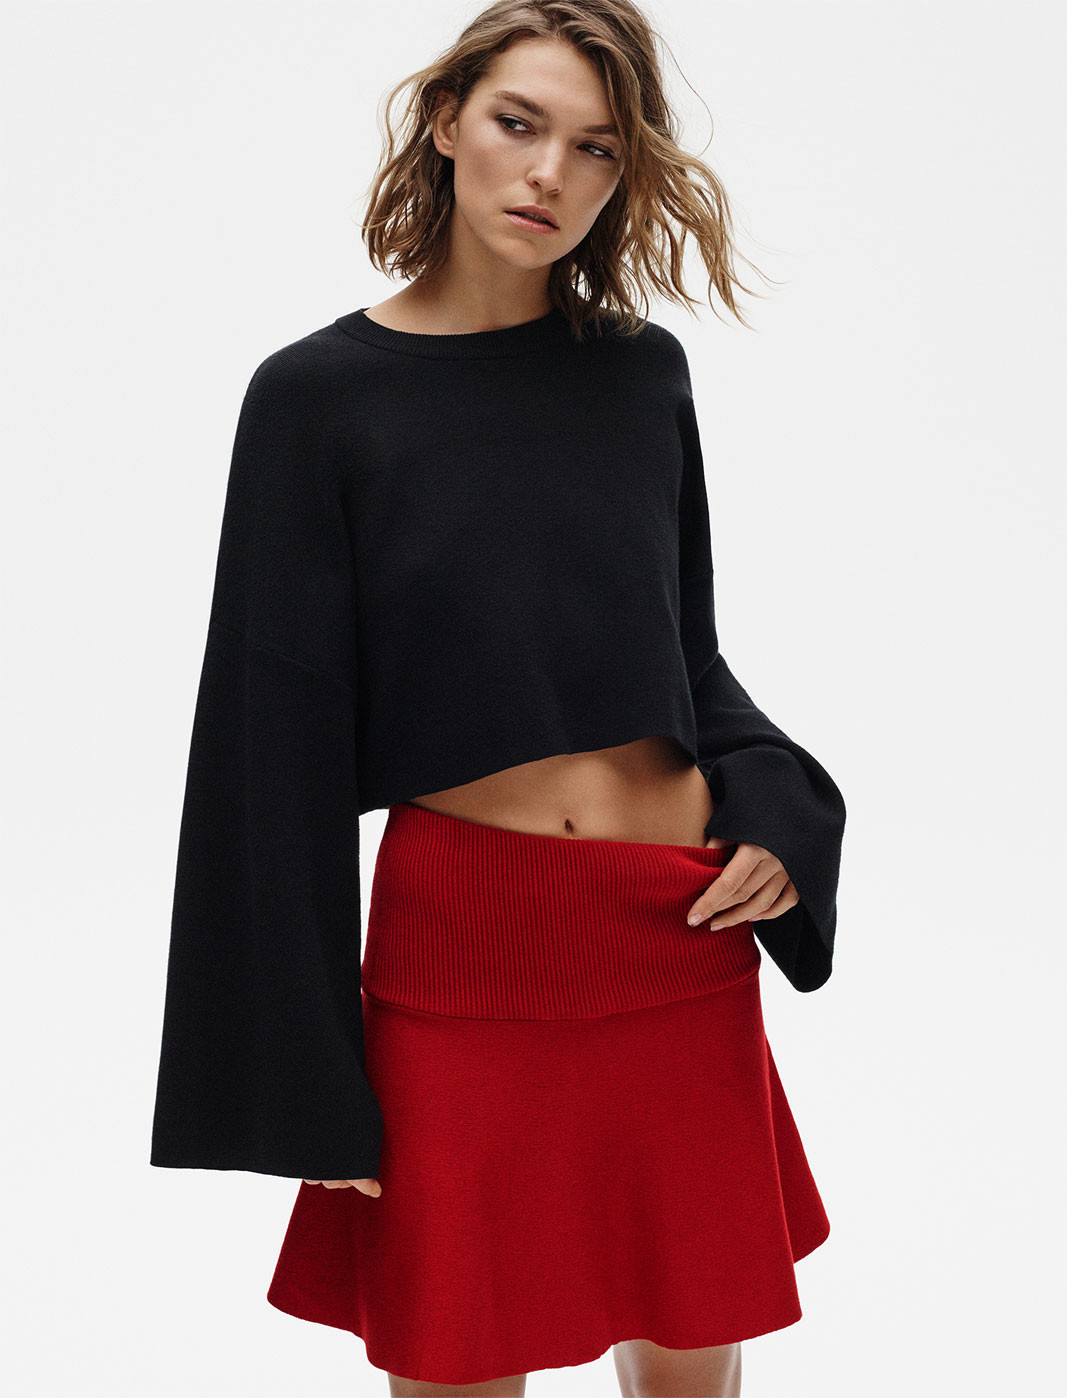 Zara editorial knit 2017